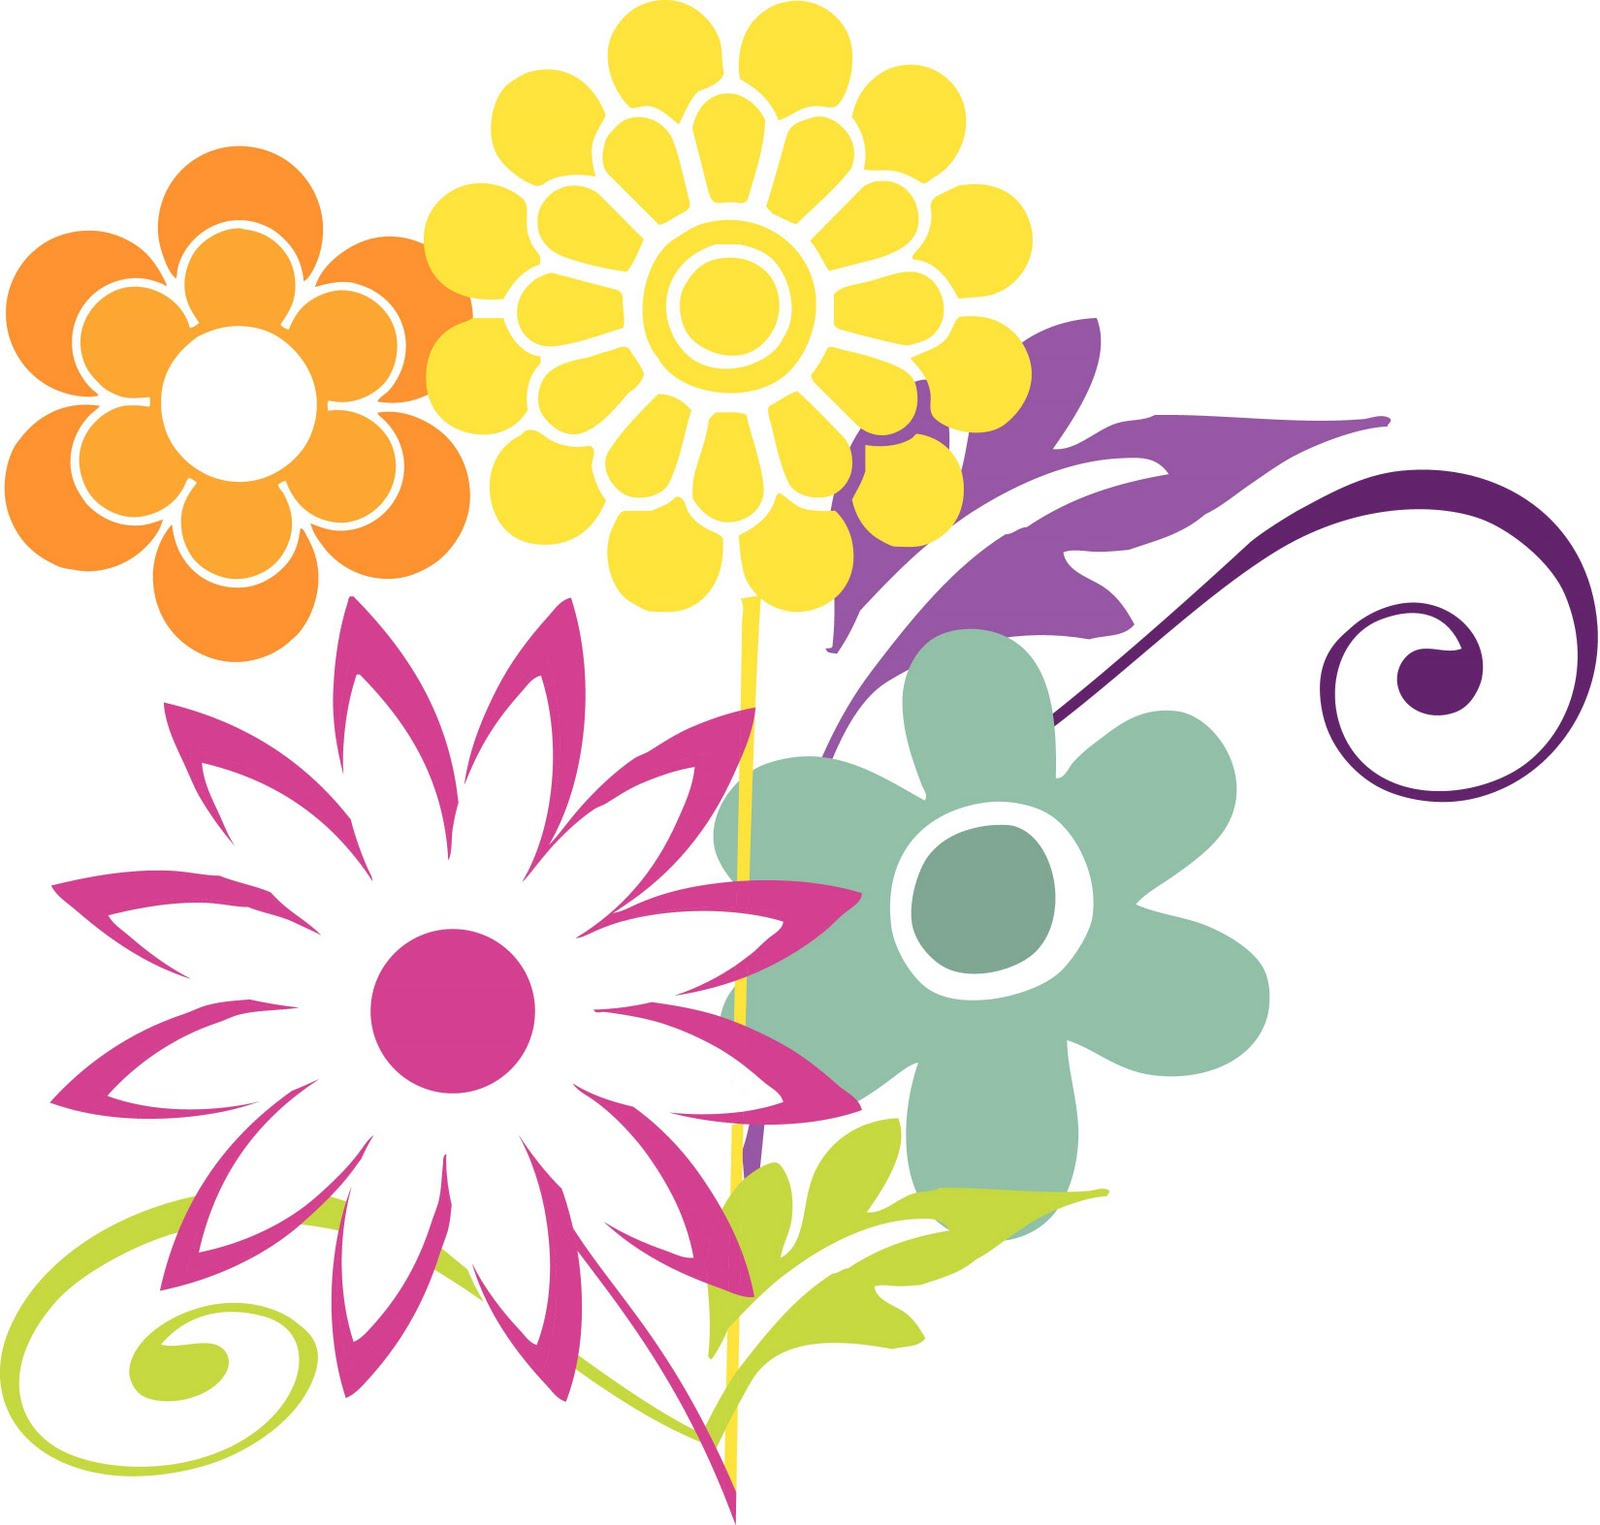 free spring flower bouquet clipart - photo #47